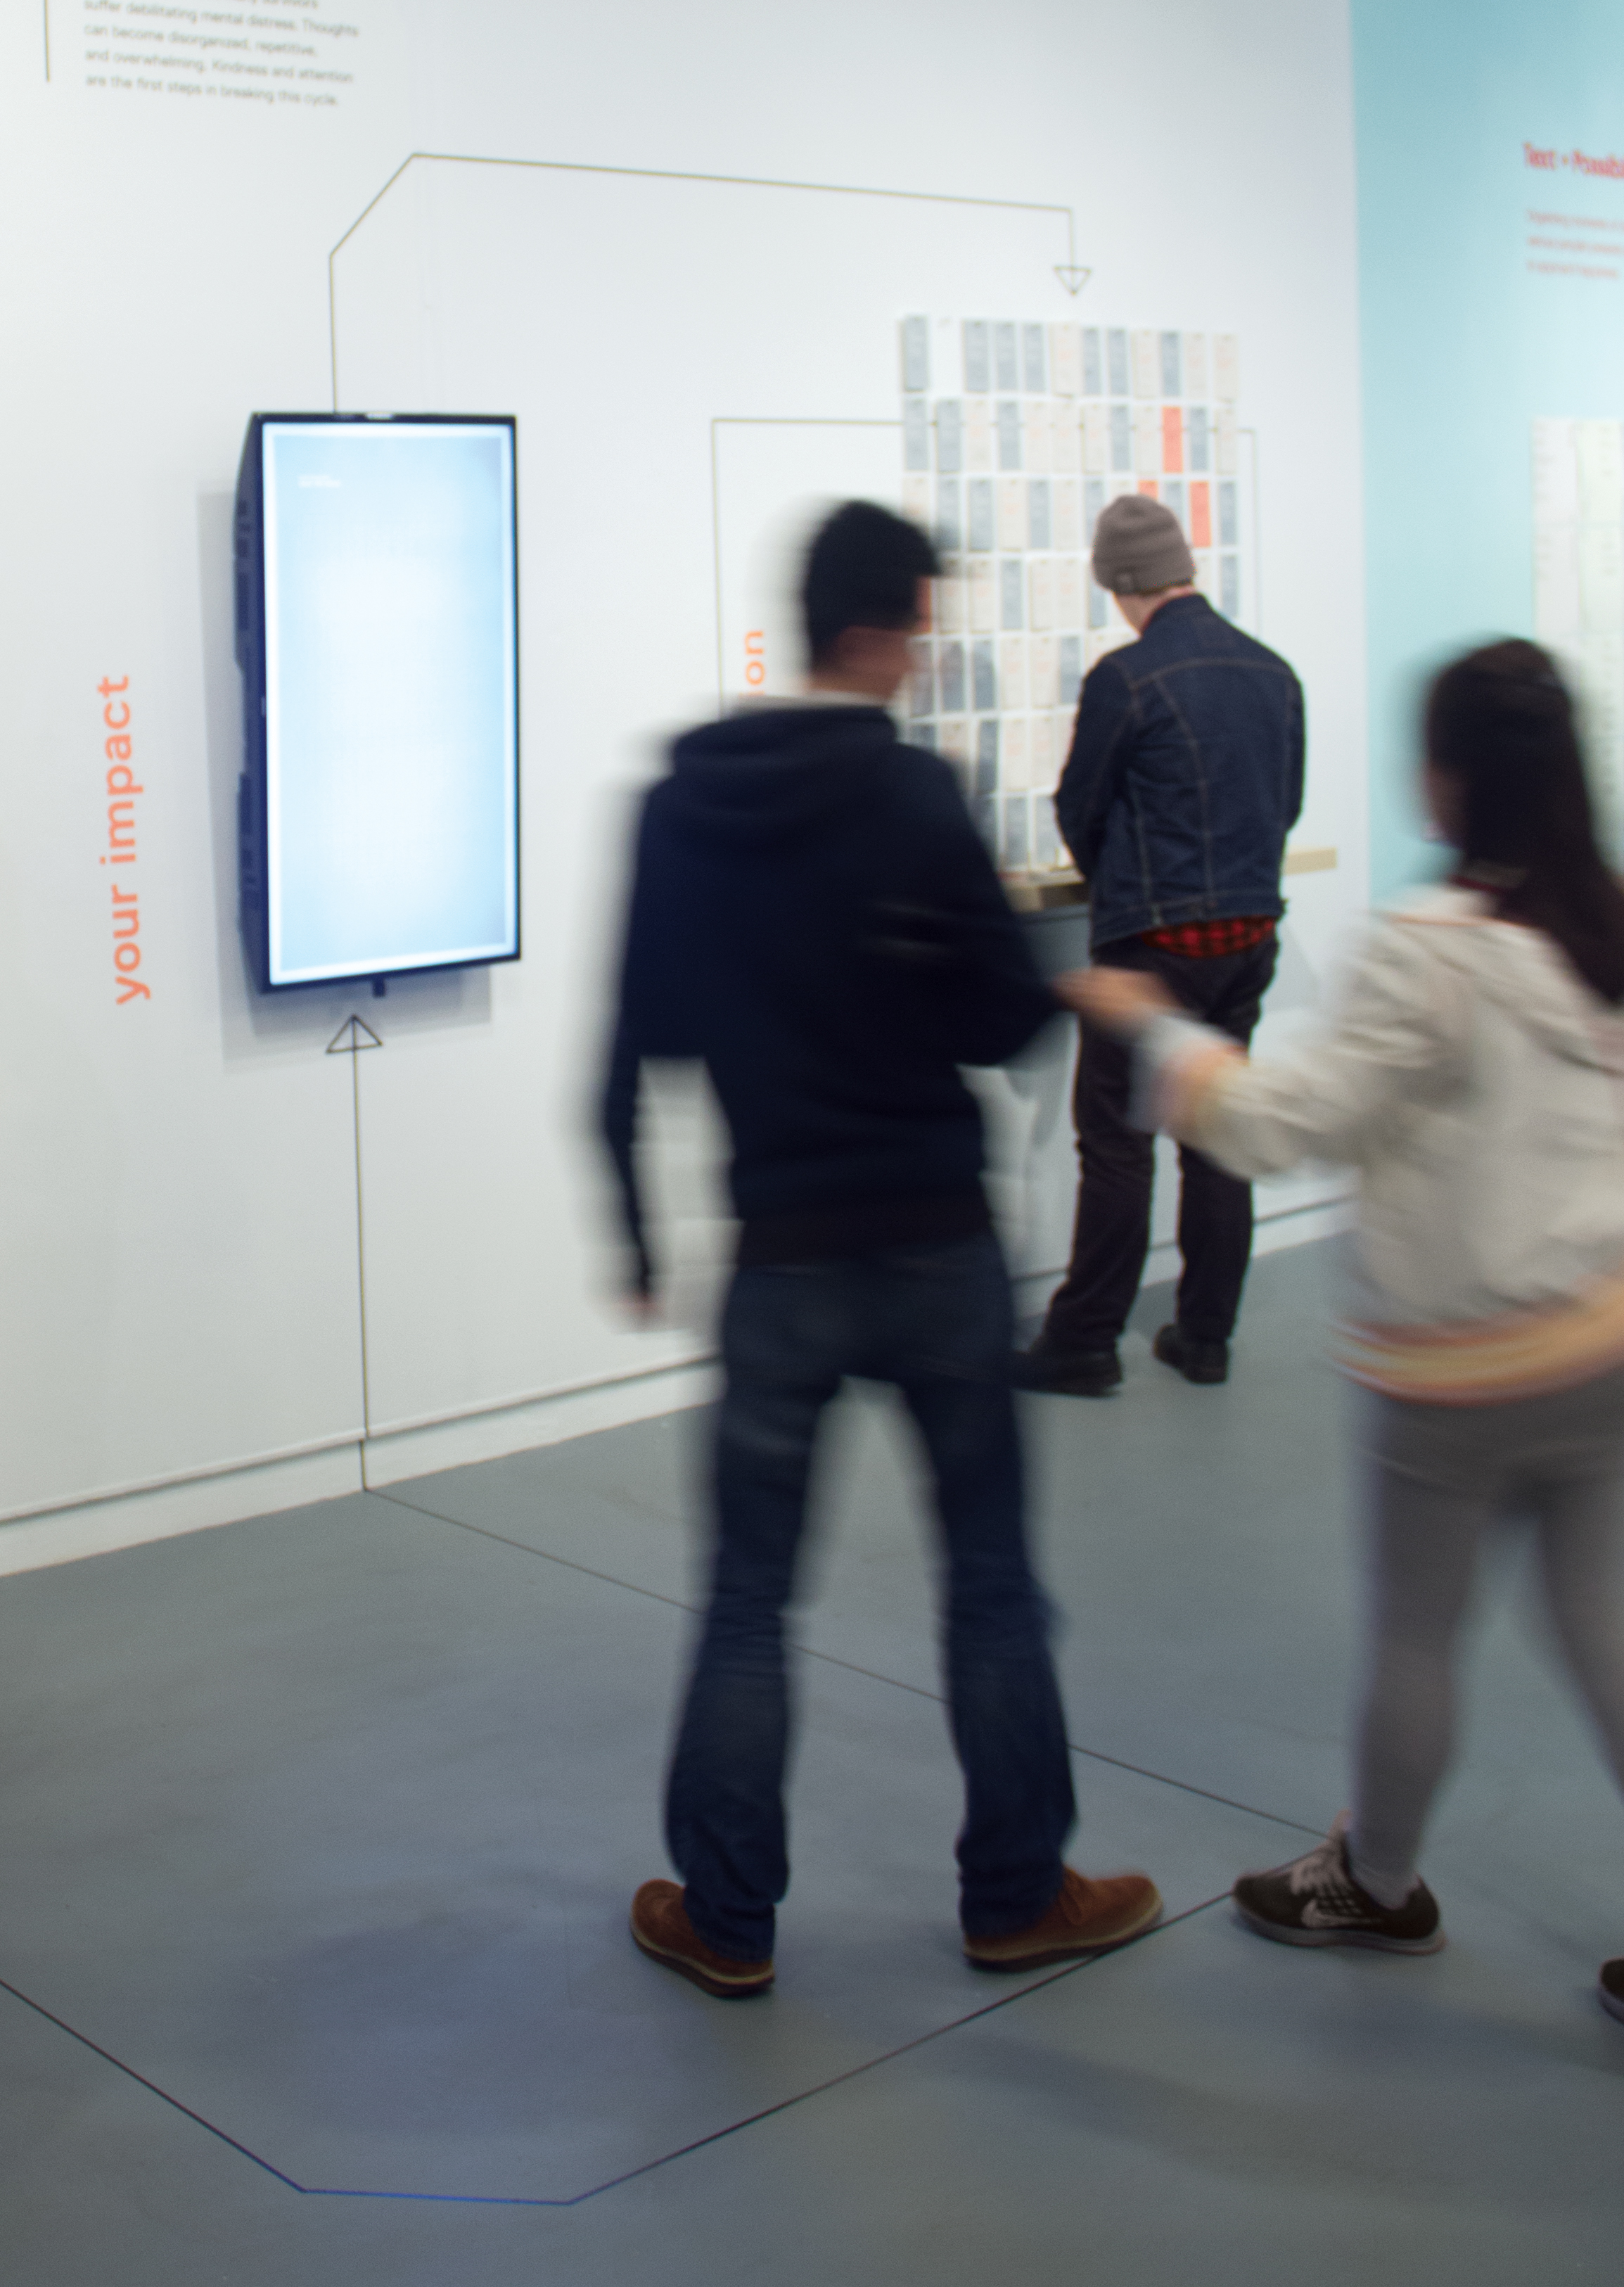 Exhibition visitors approach the interactive screen.